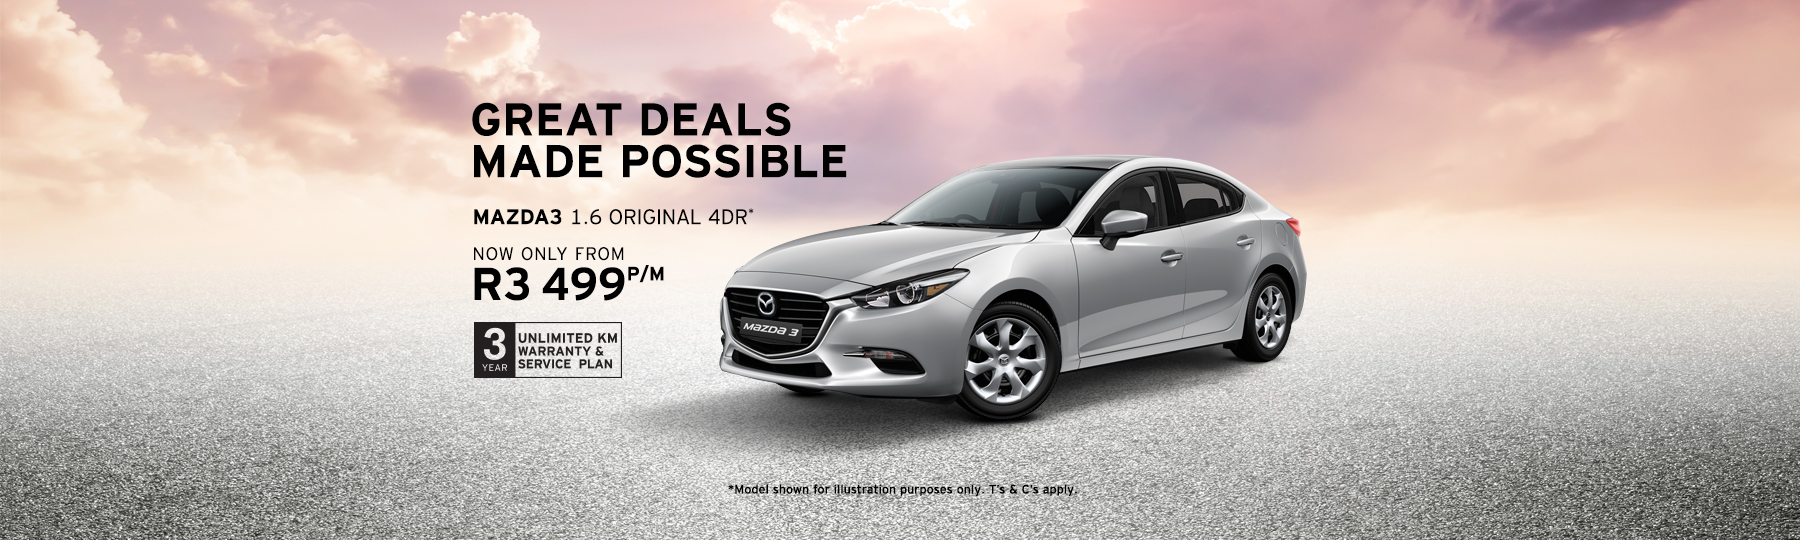 content/great-deals-made-possible-mazda3.html